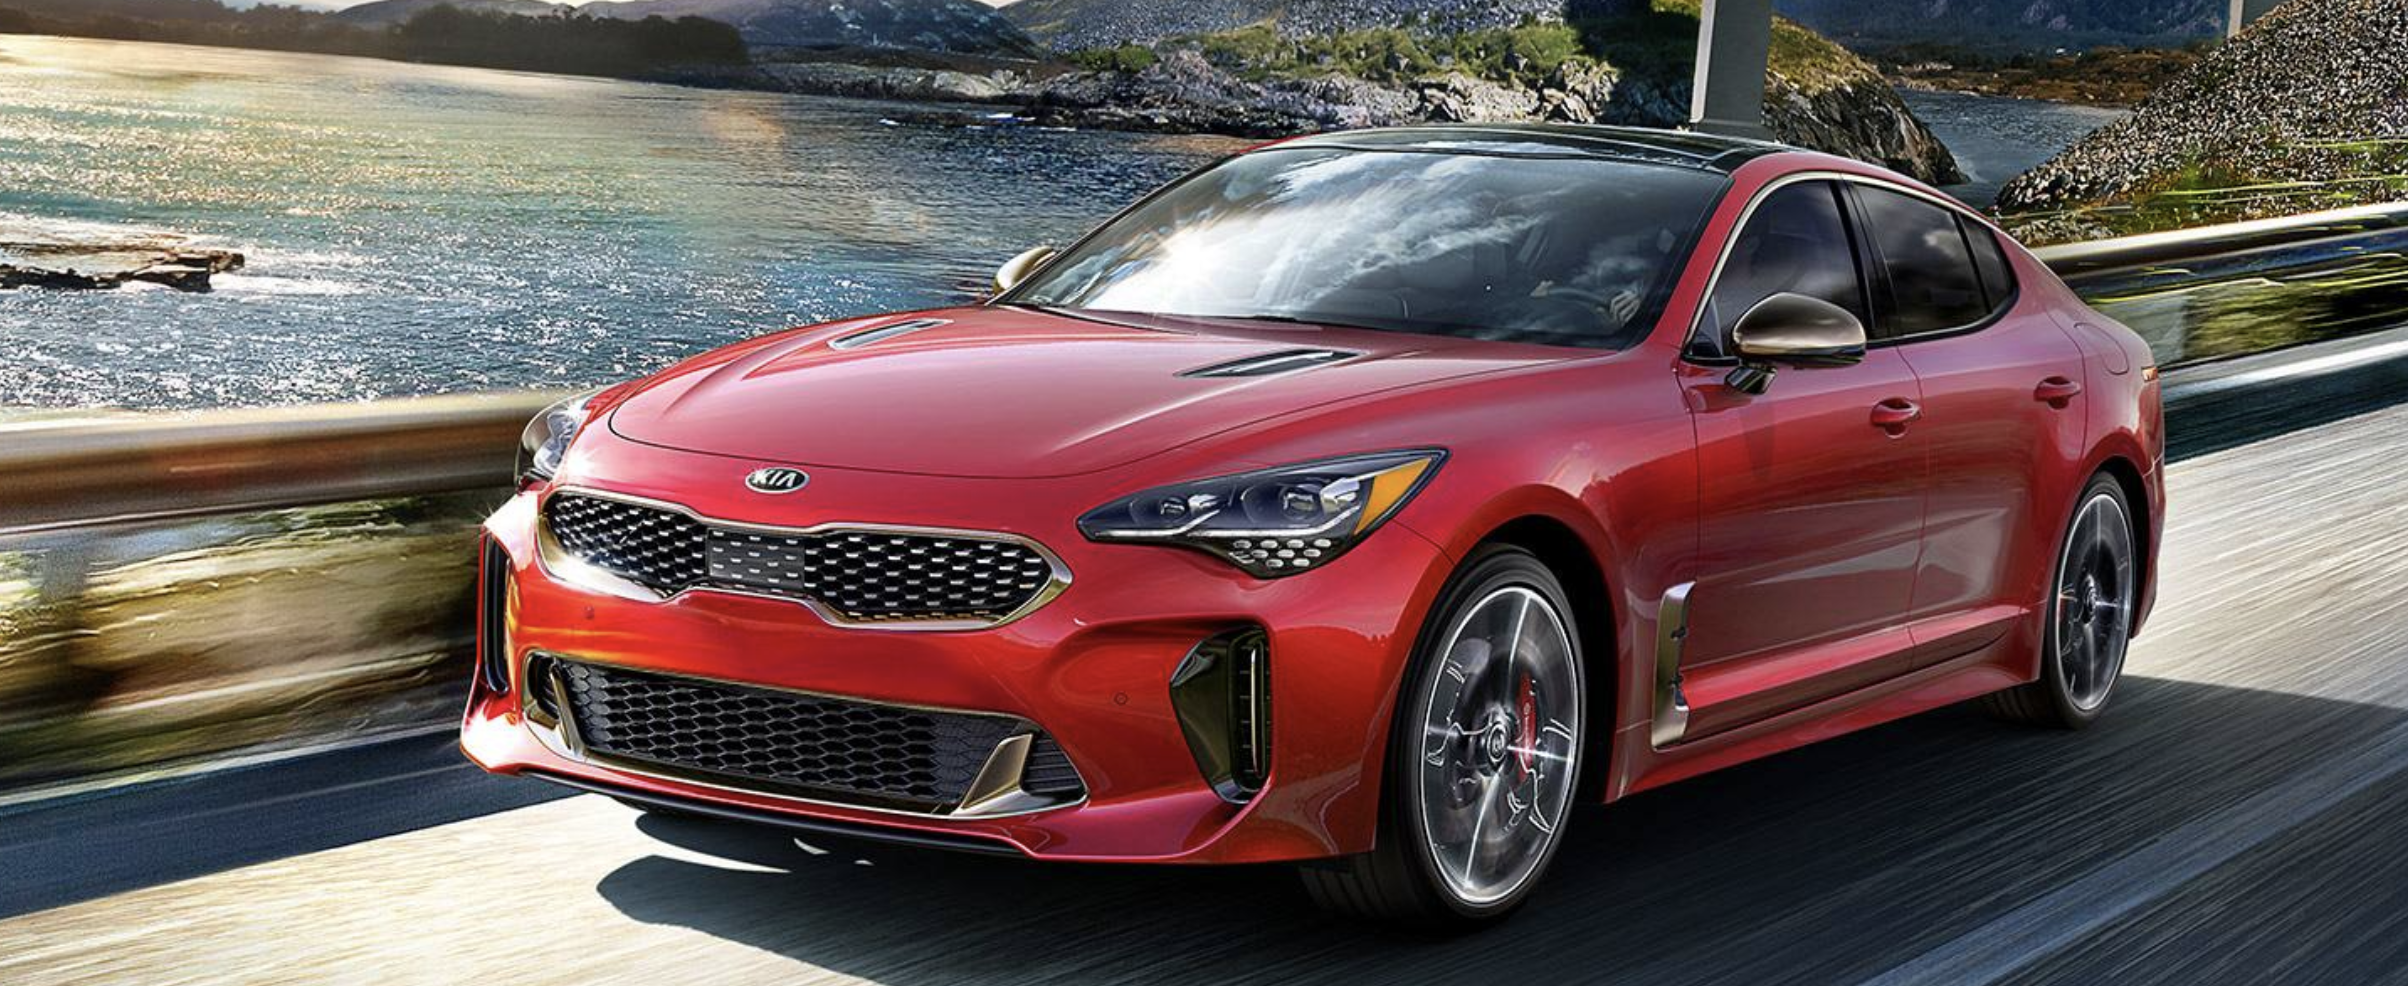 Kia Stinger in Alabama